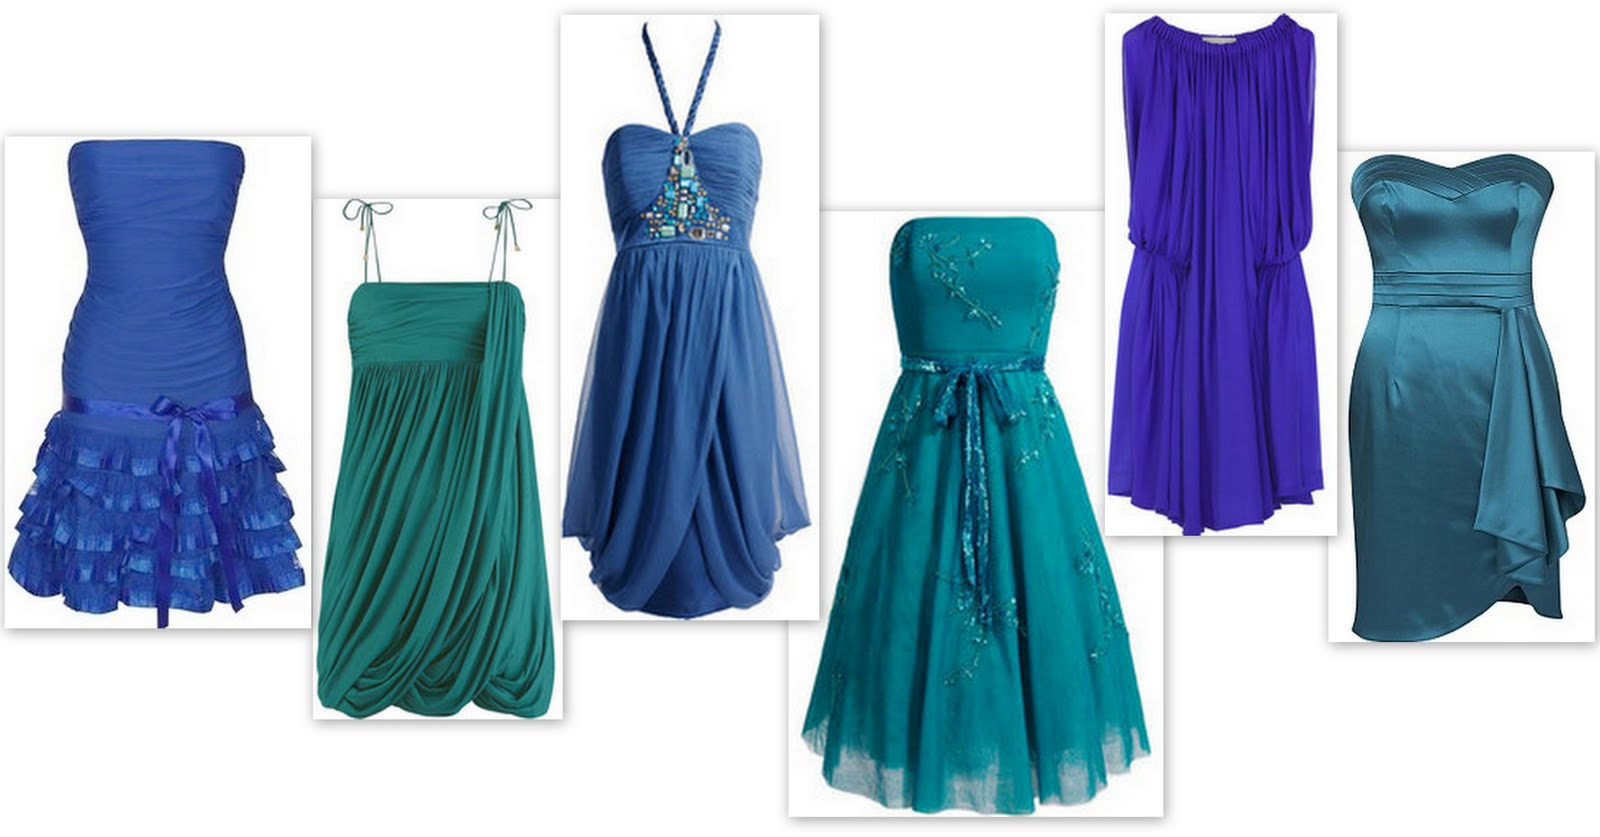 Peacock blue bridesmaid dresses re are already using